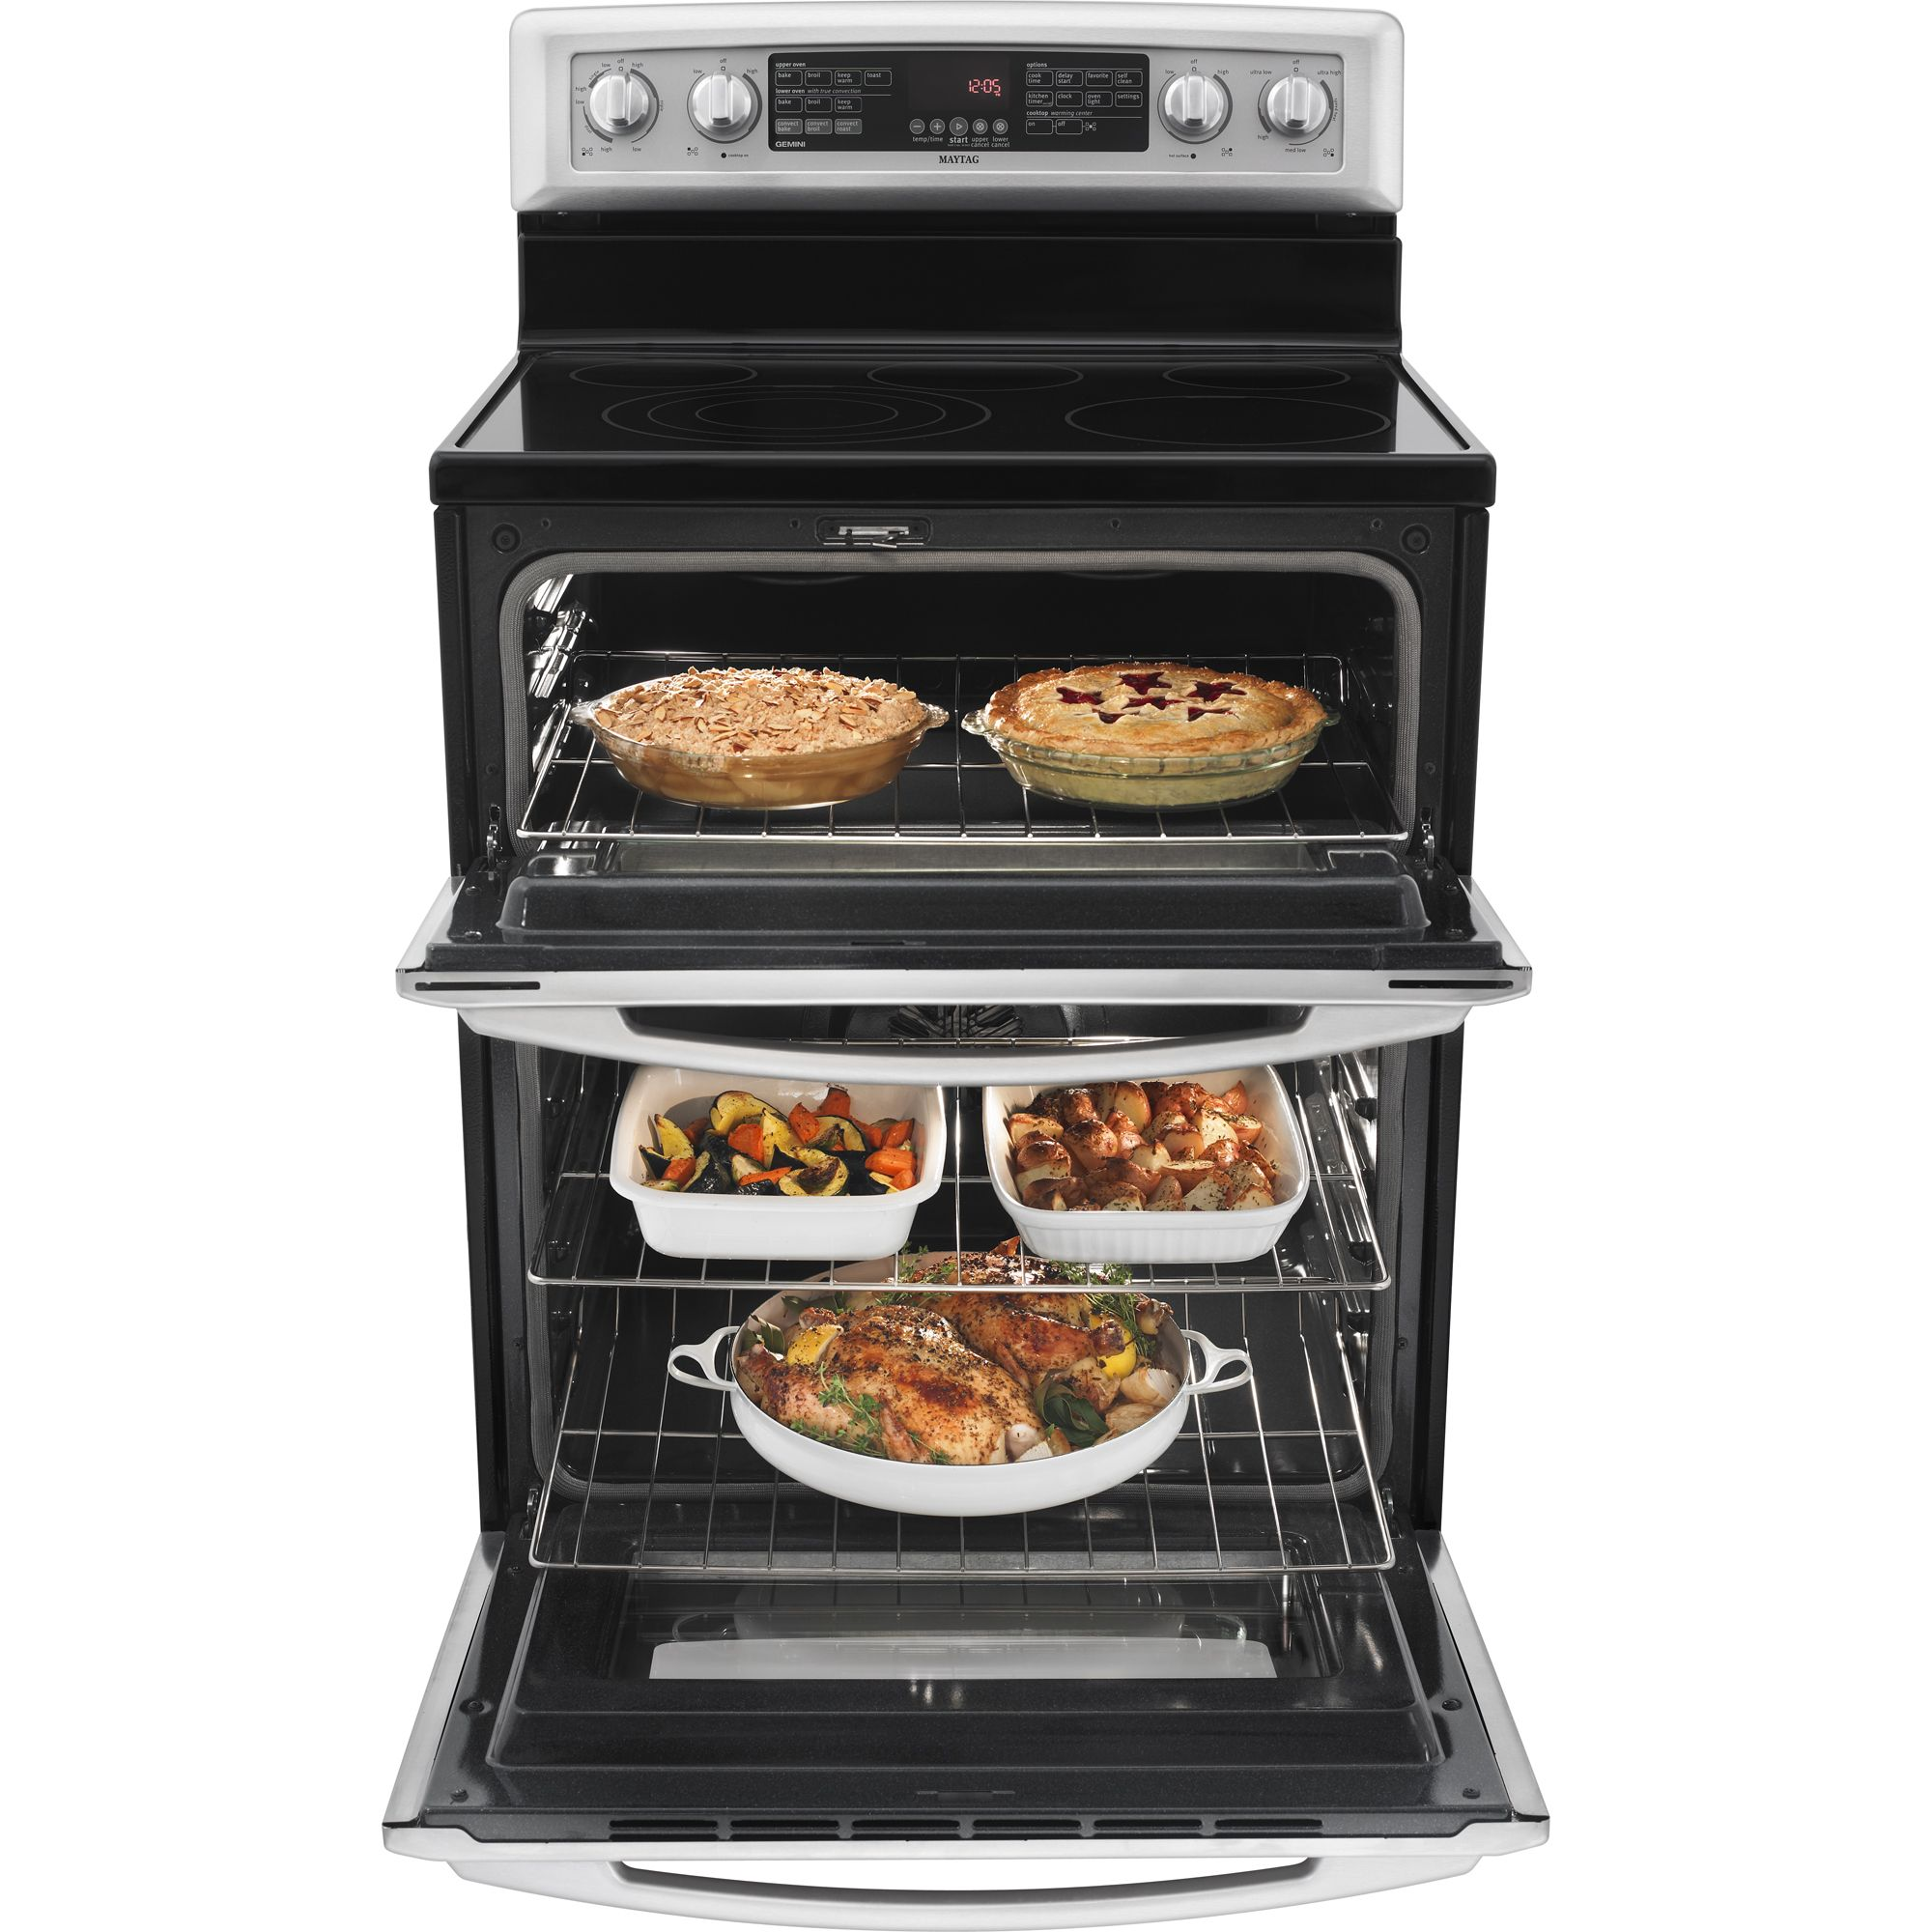 "Maytag 30"" Double Oven Freestanding Electric Range"